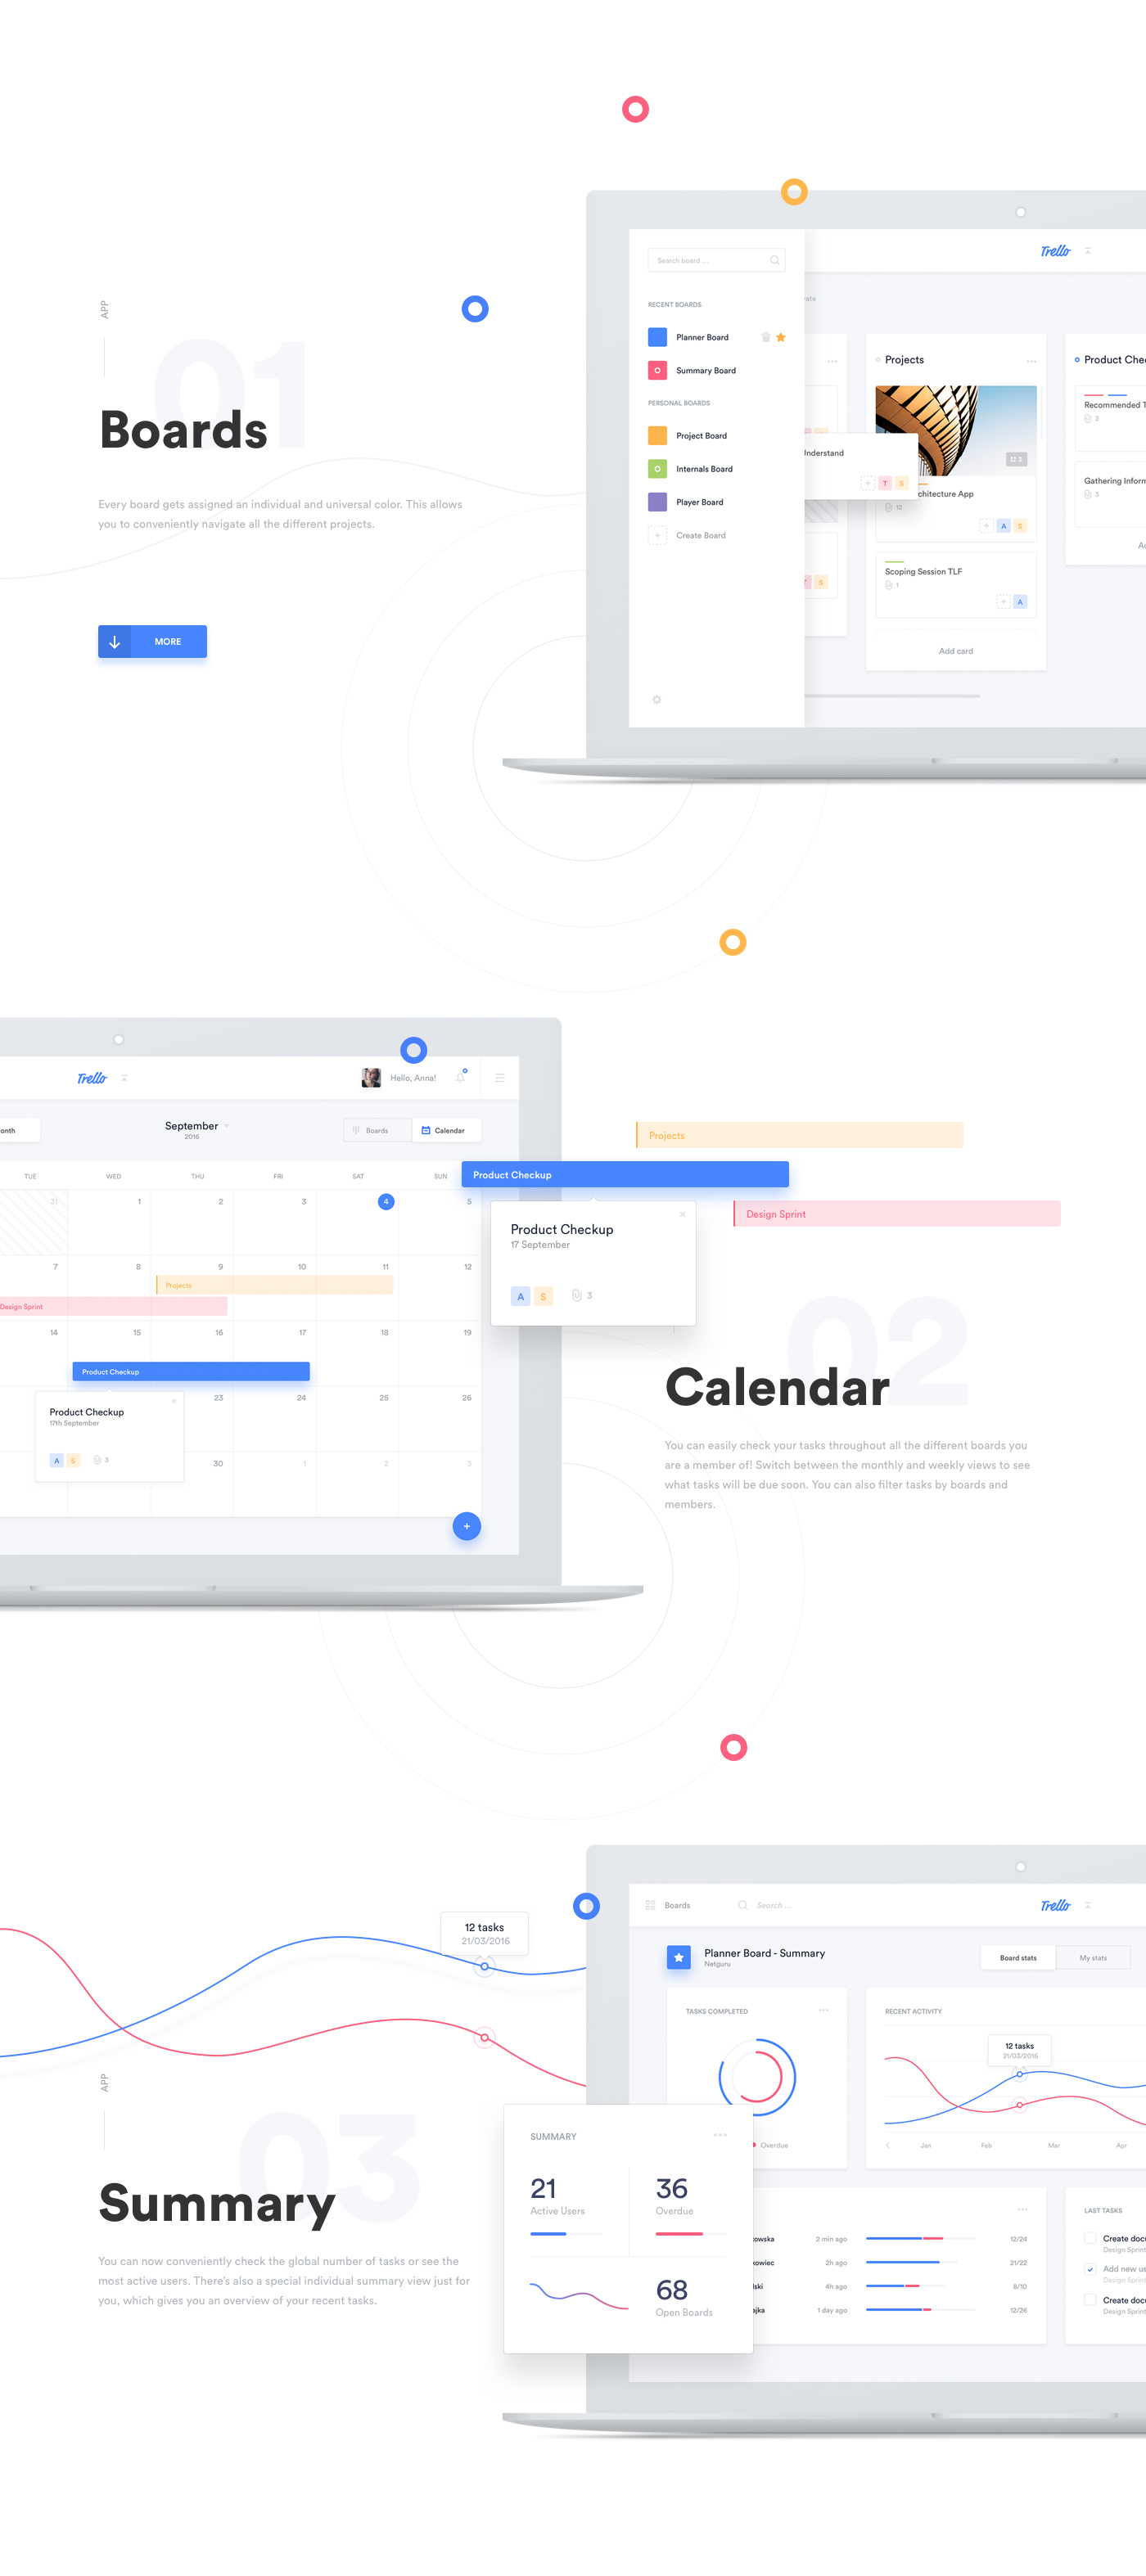 calendar task Trello redesign management dashboard search landing page statistics icons